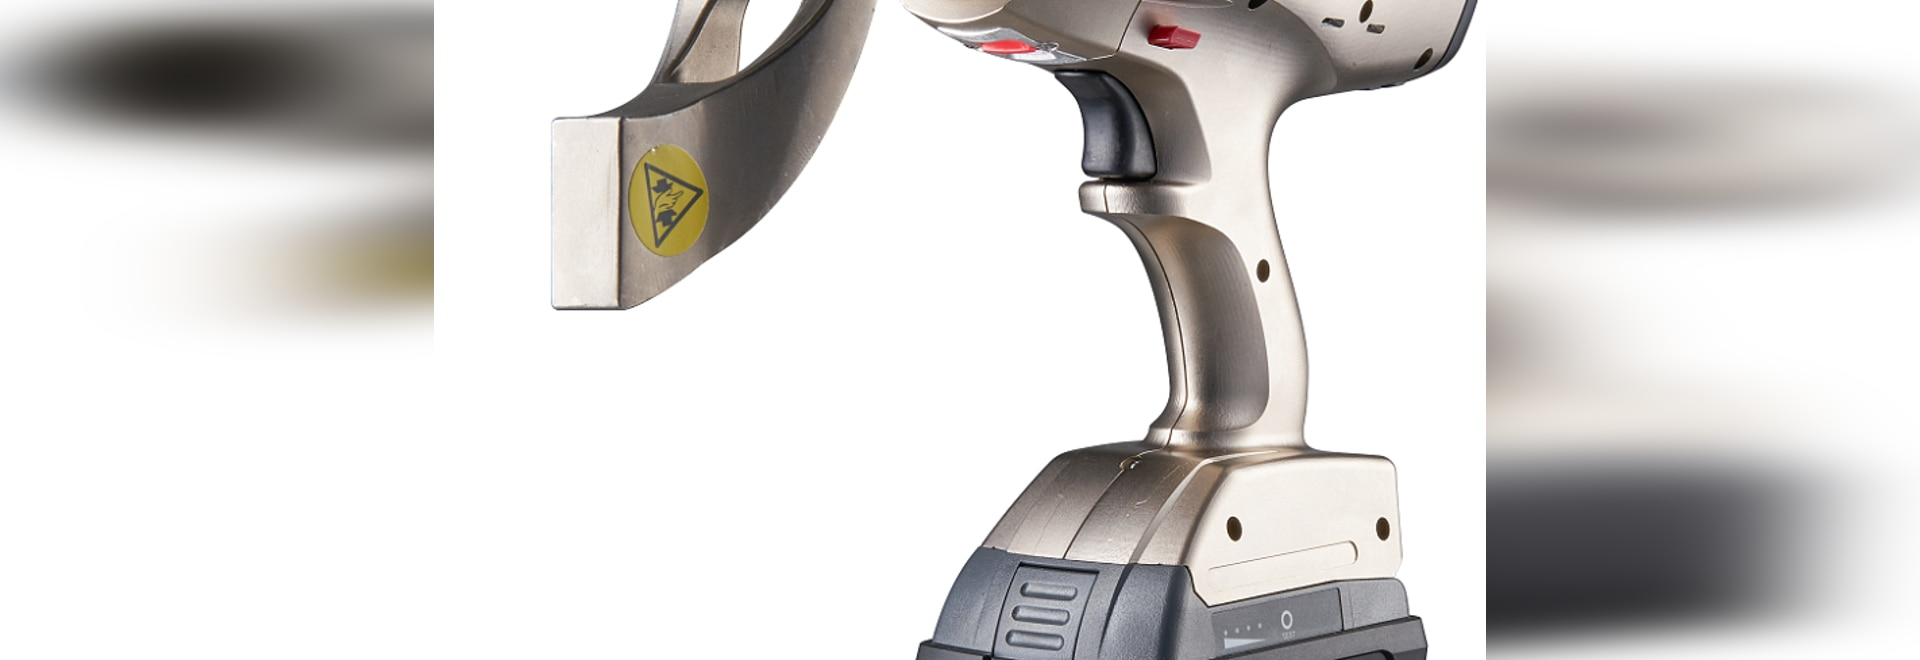 HYTORC's multi-award-winning LITHIUM SERIES II Electric Torque Tool delivers unmatched control and usability